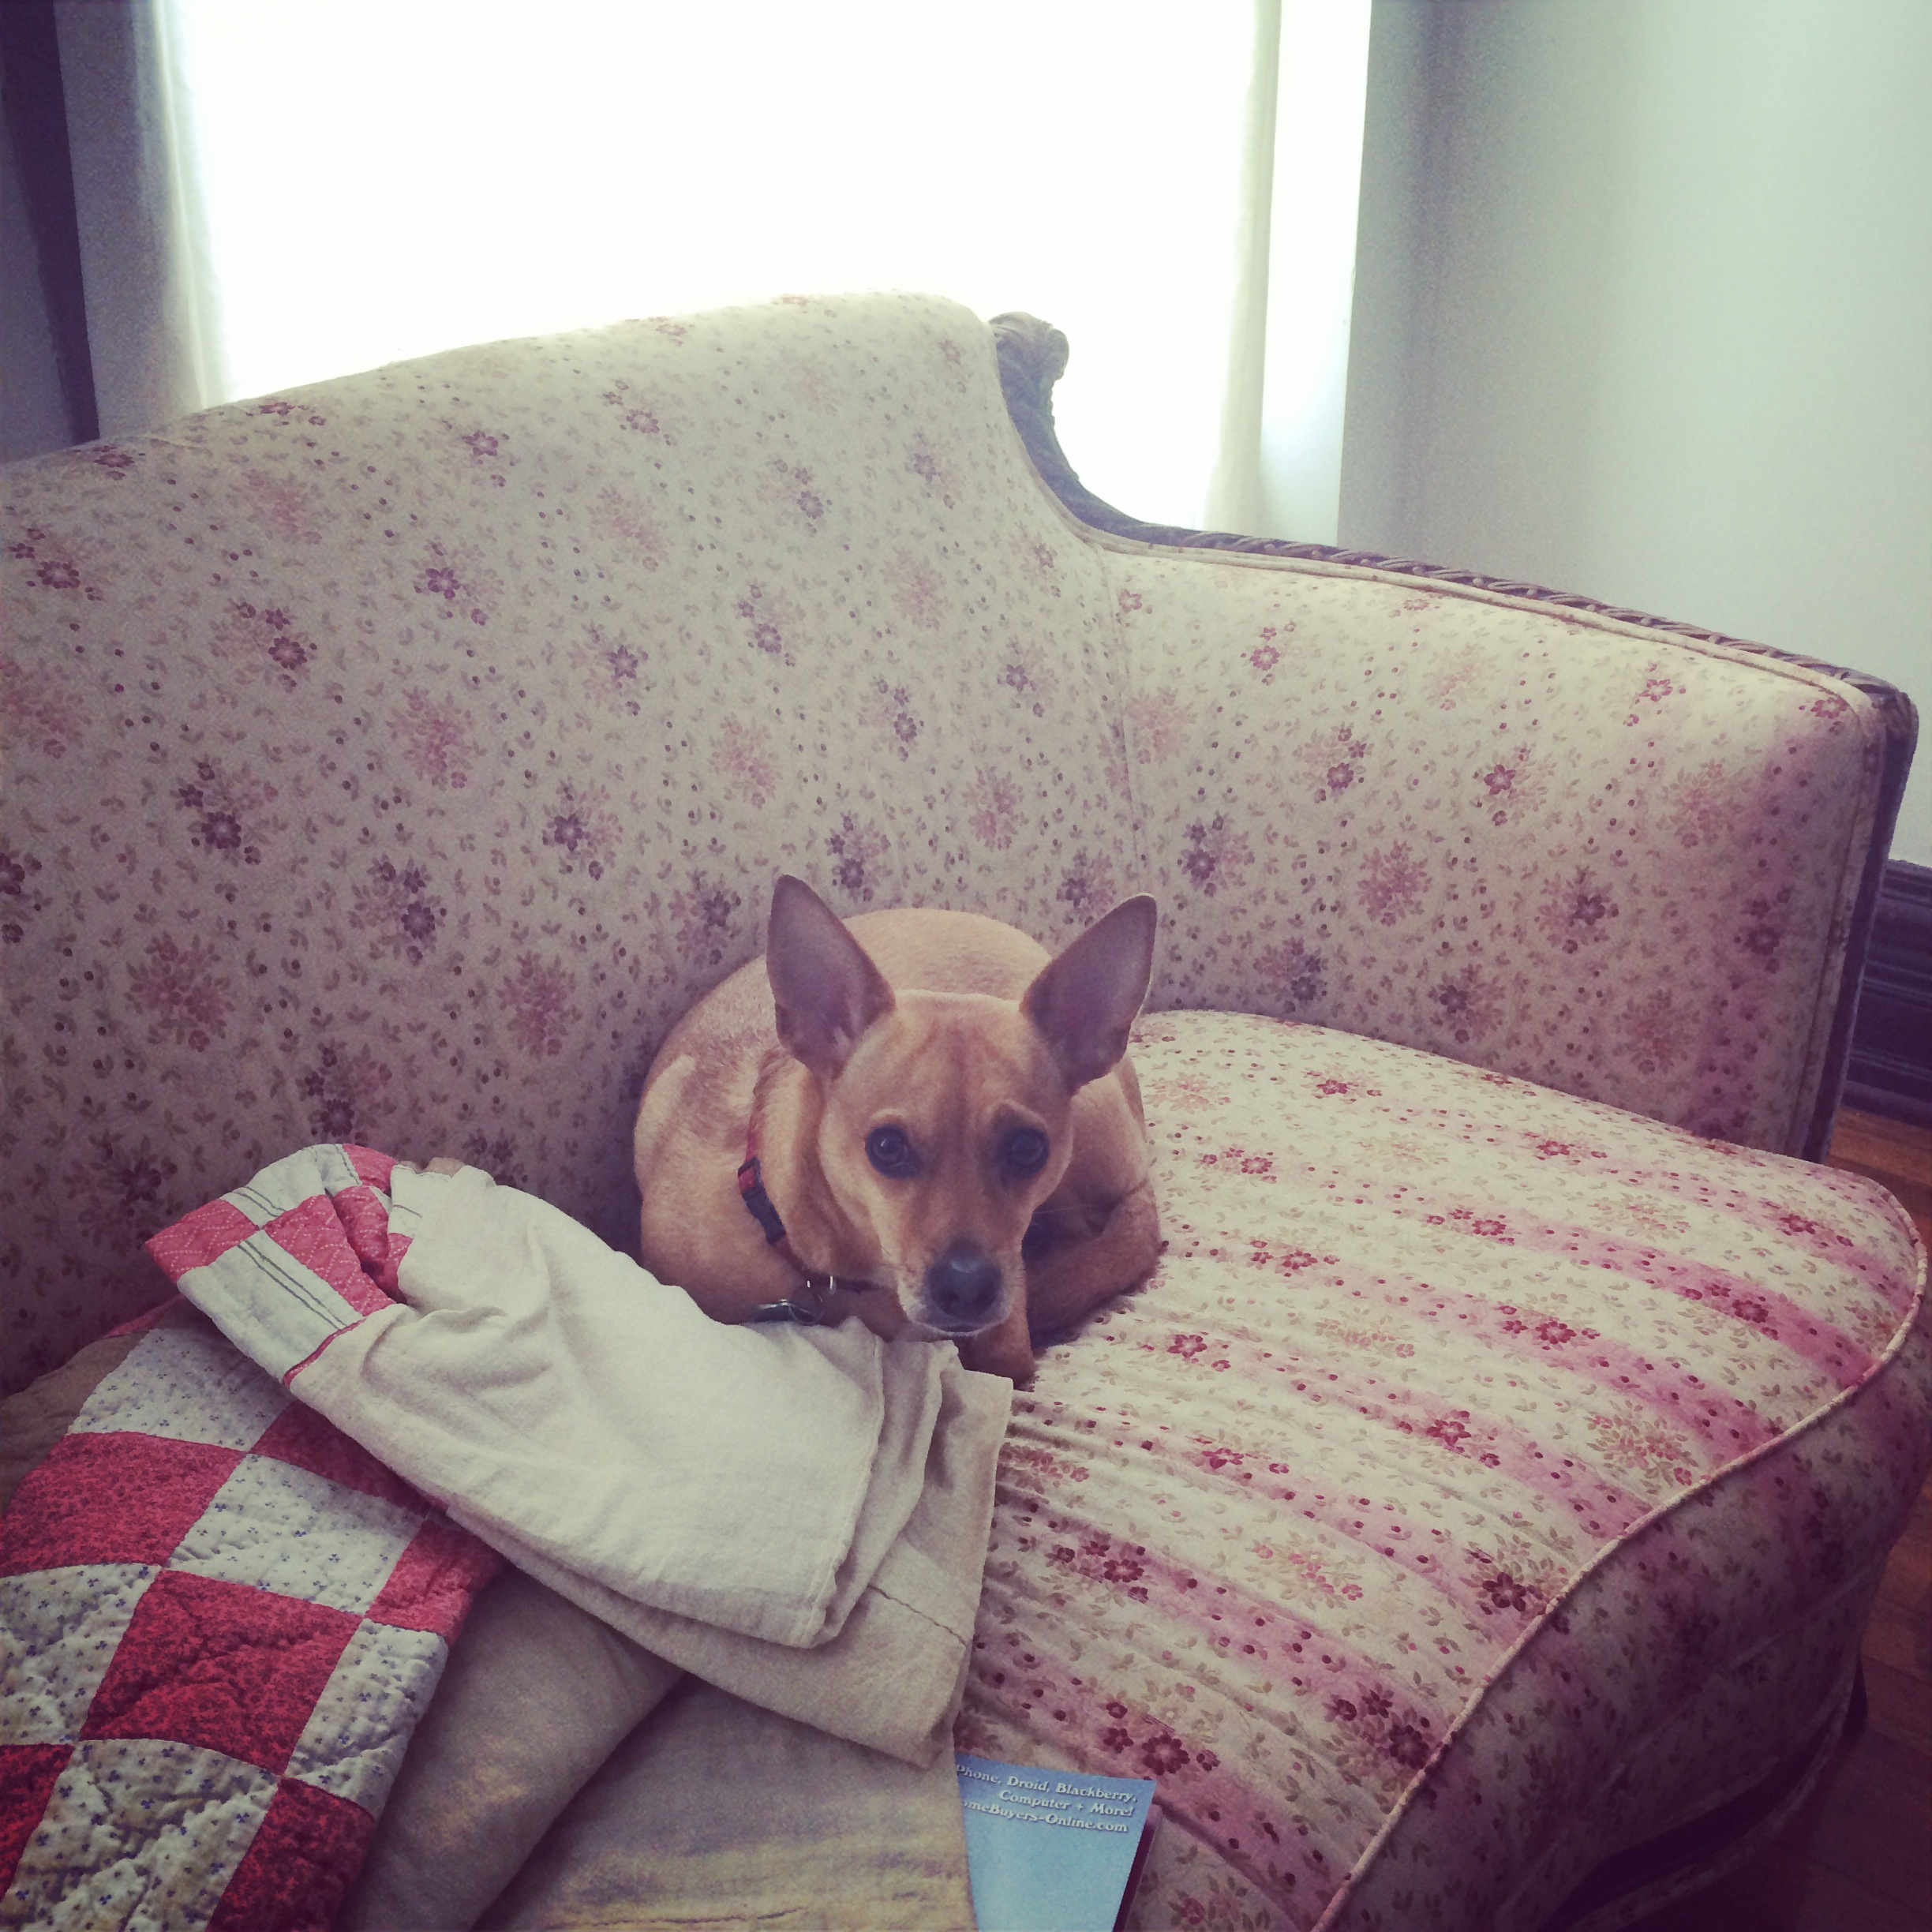 willa enjoyed the vintage sofa...